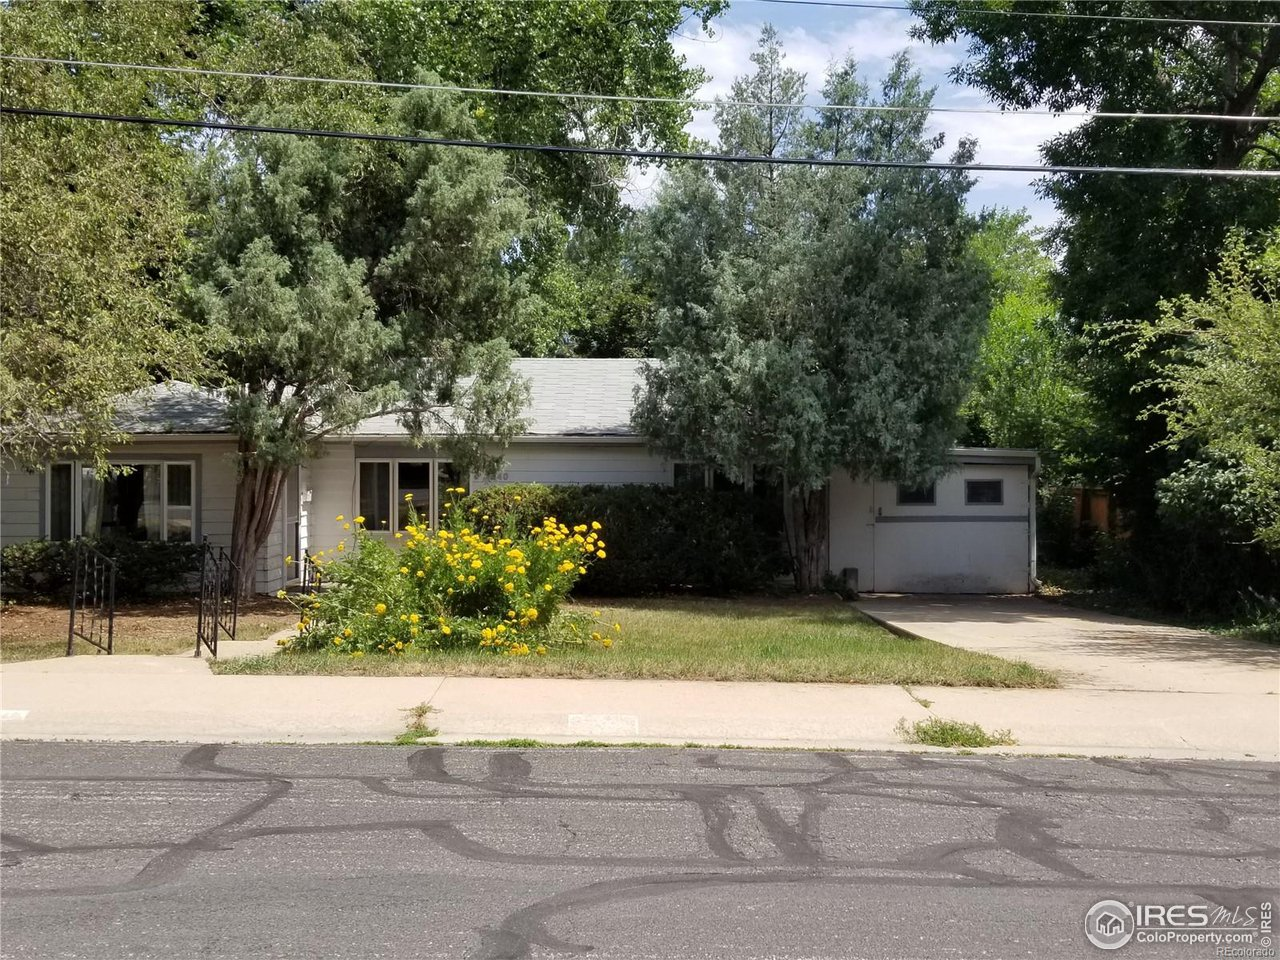 2940 14th St, Boulder CO 80304